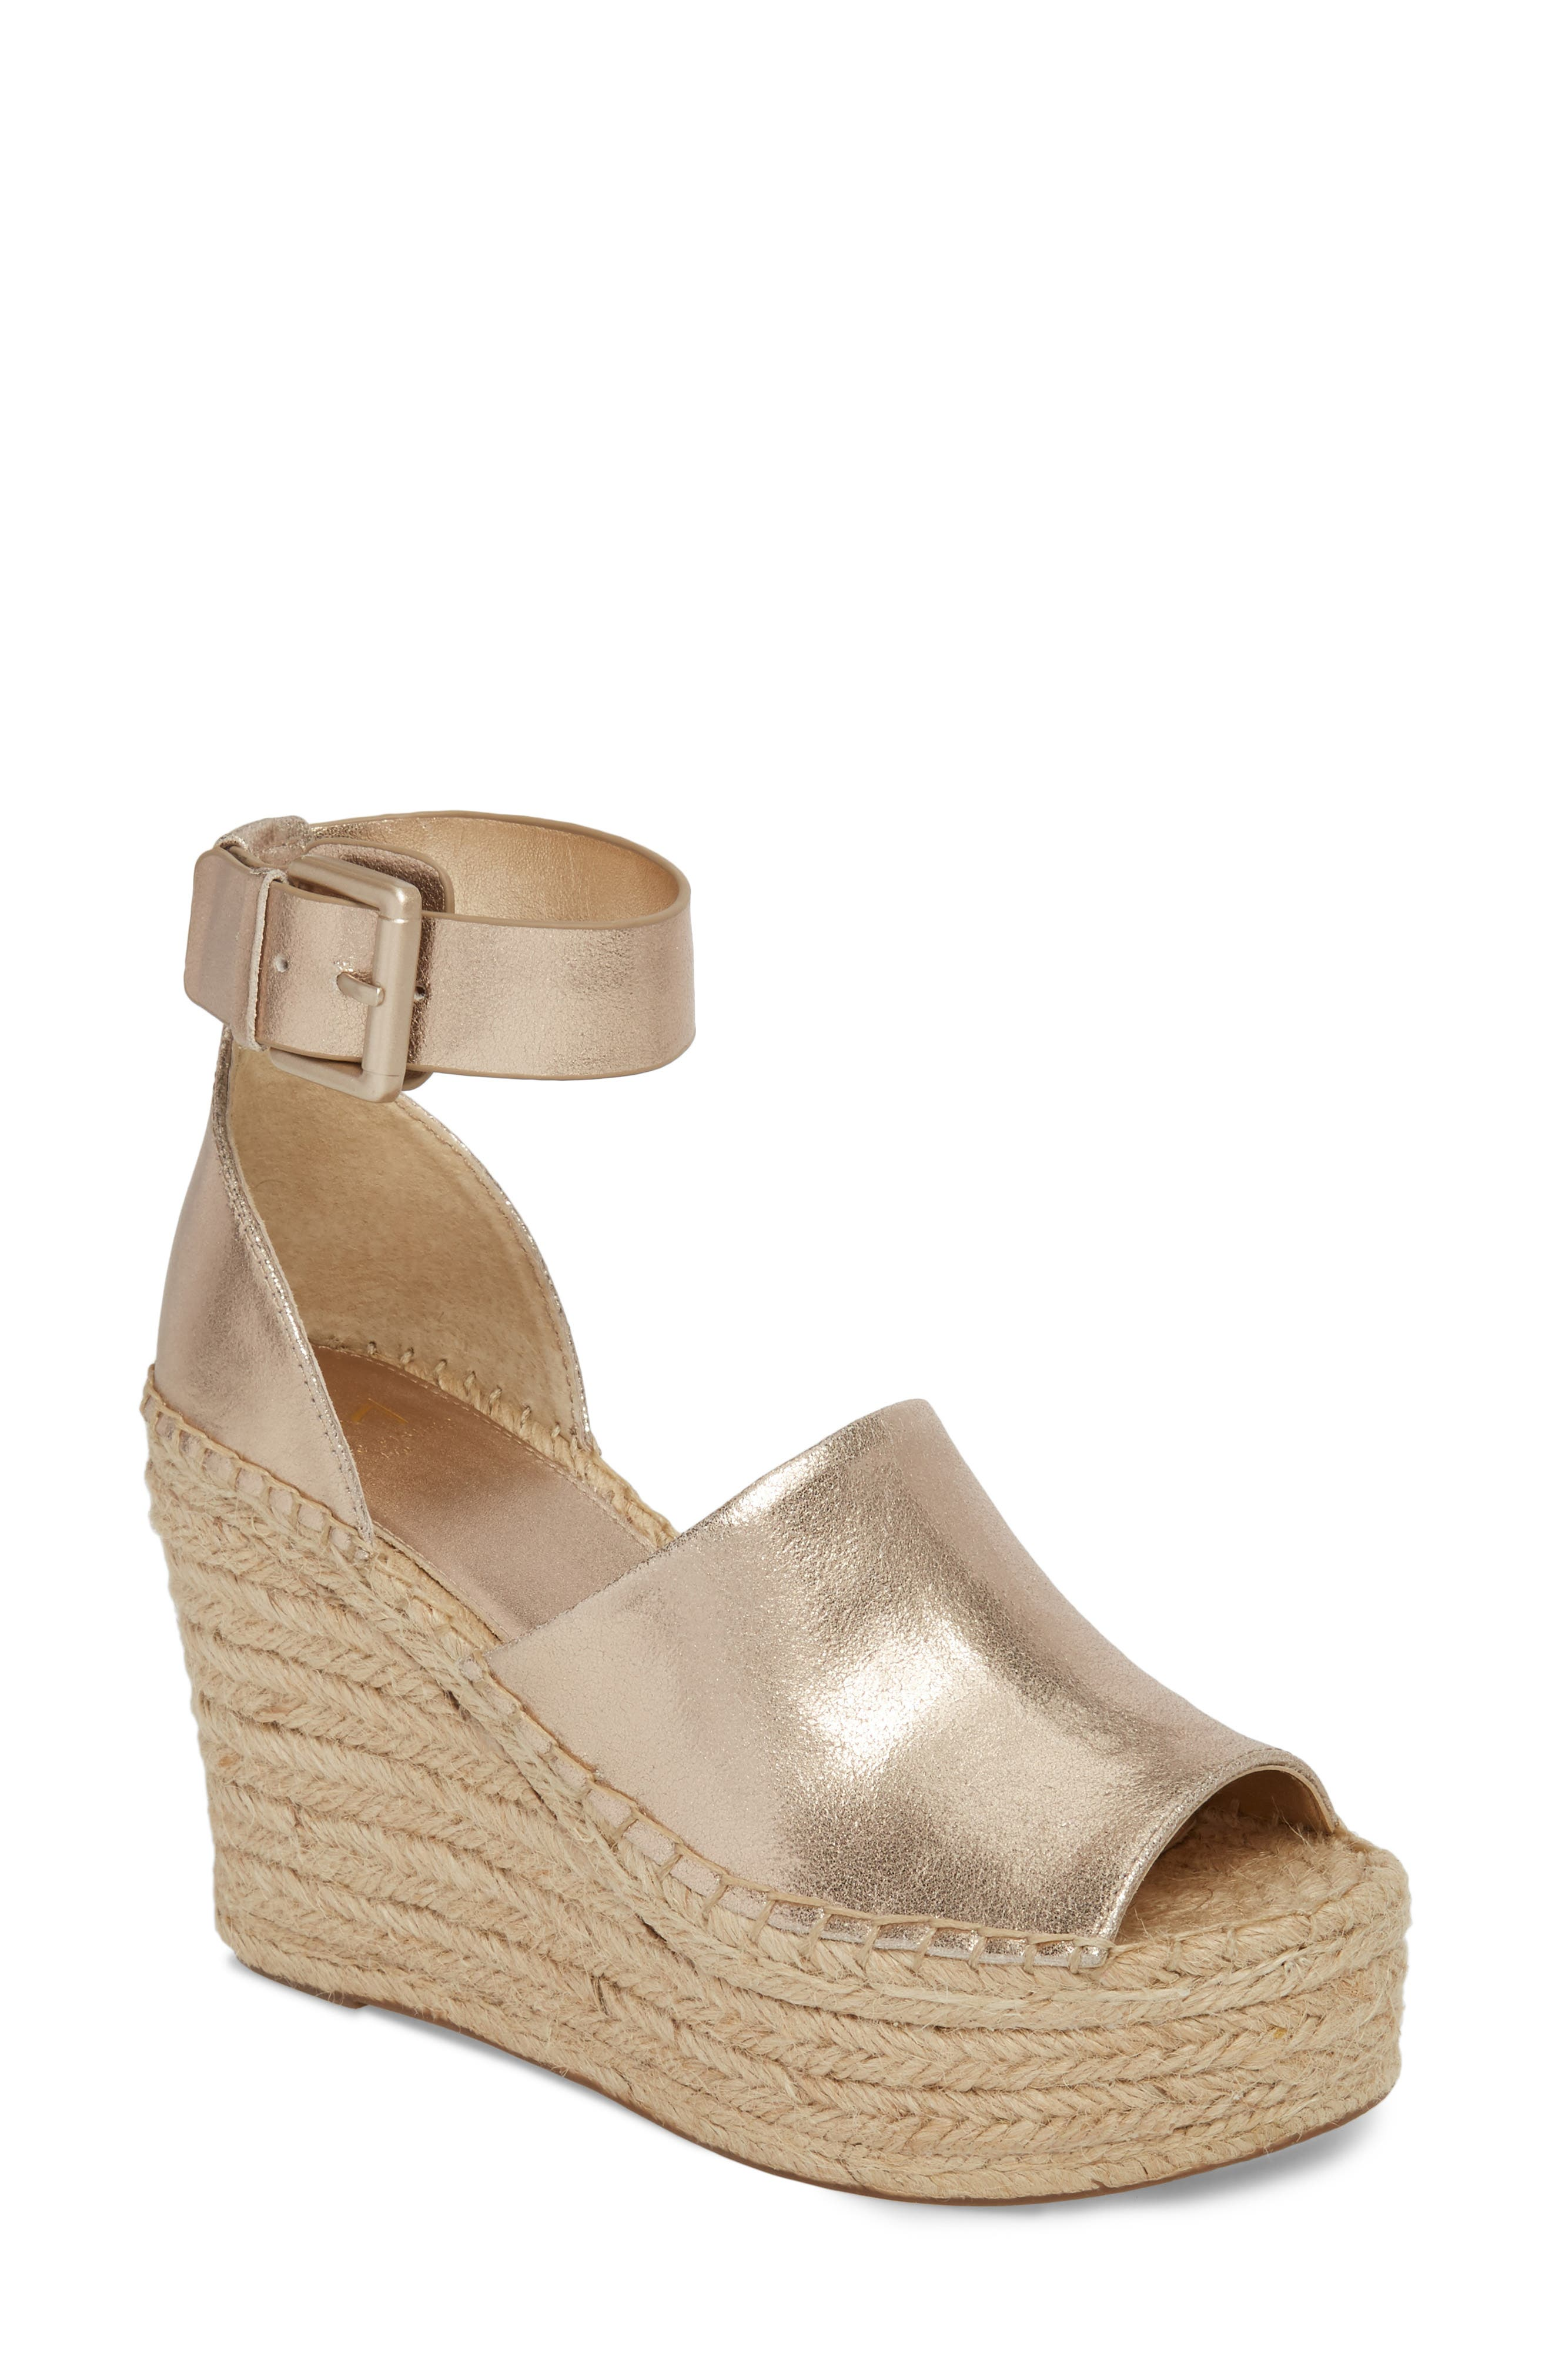 Adalyn Espadrille Wedge Sandal,                         Main,                         color, Gold Leather